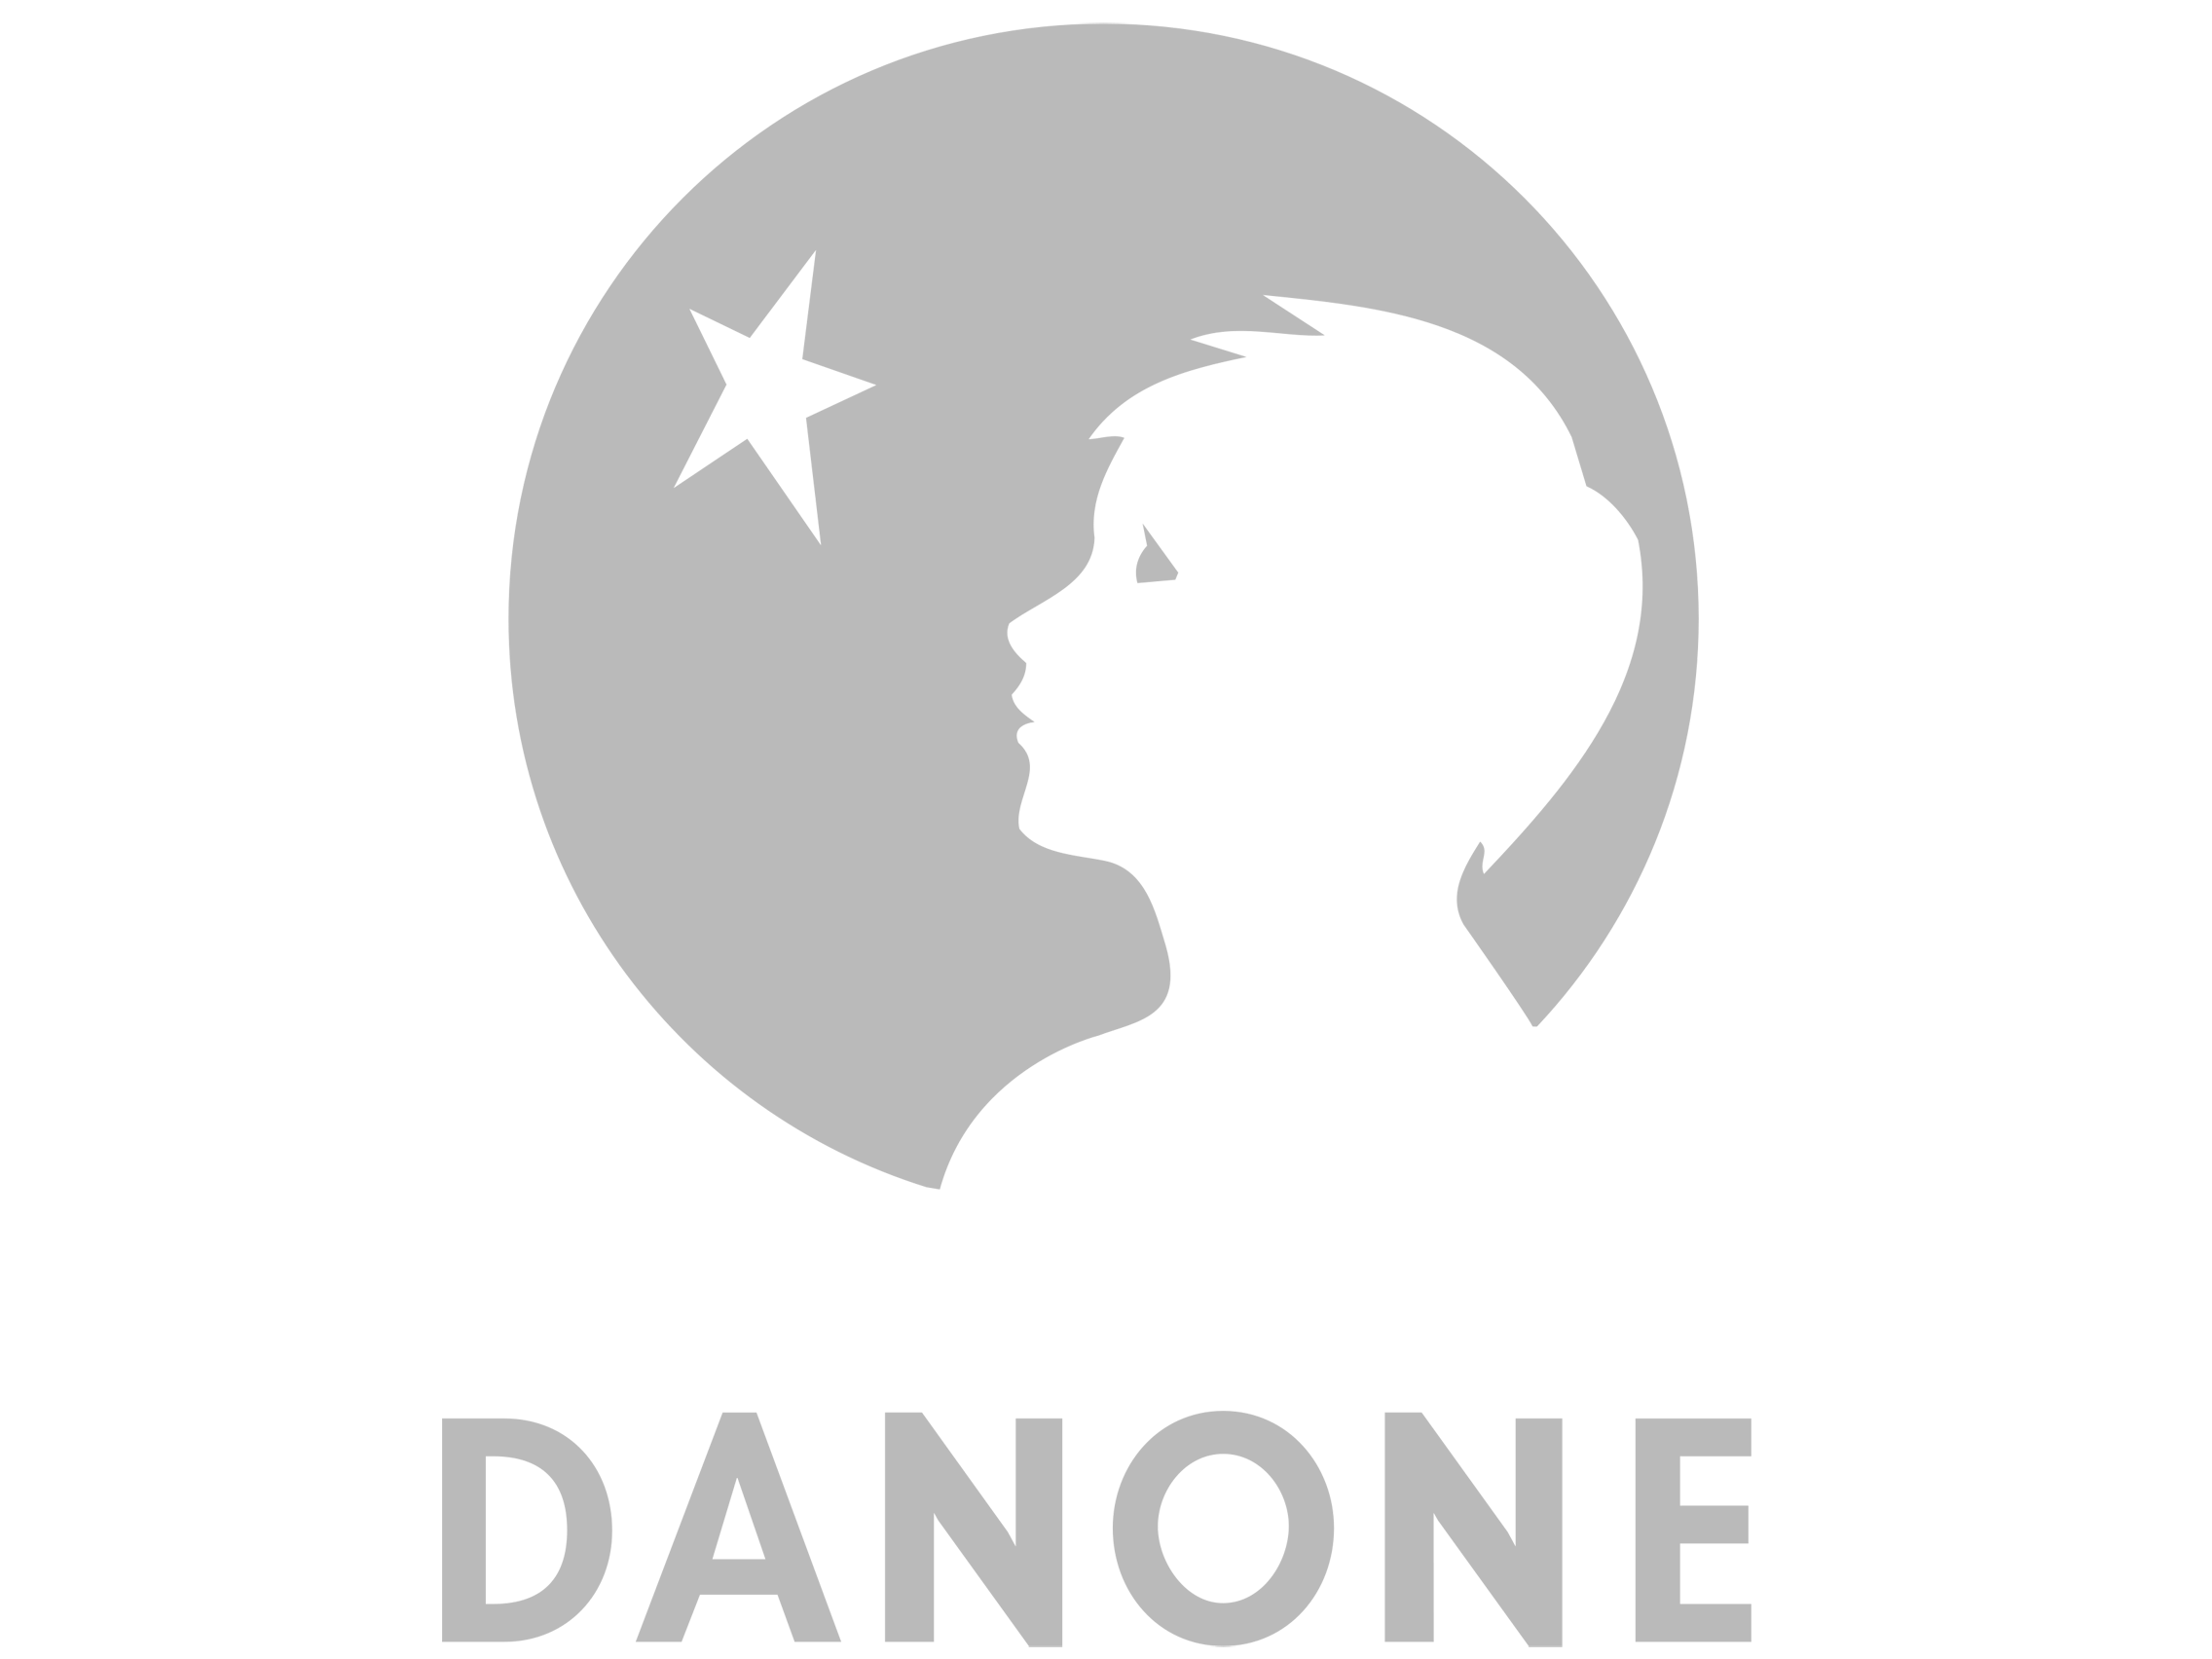 Danone-group-logo-and-wordmark.png